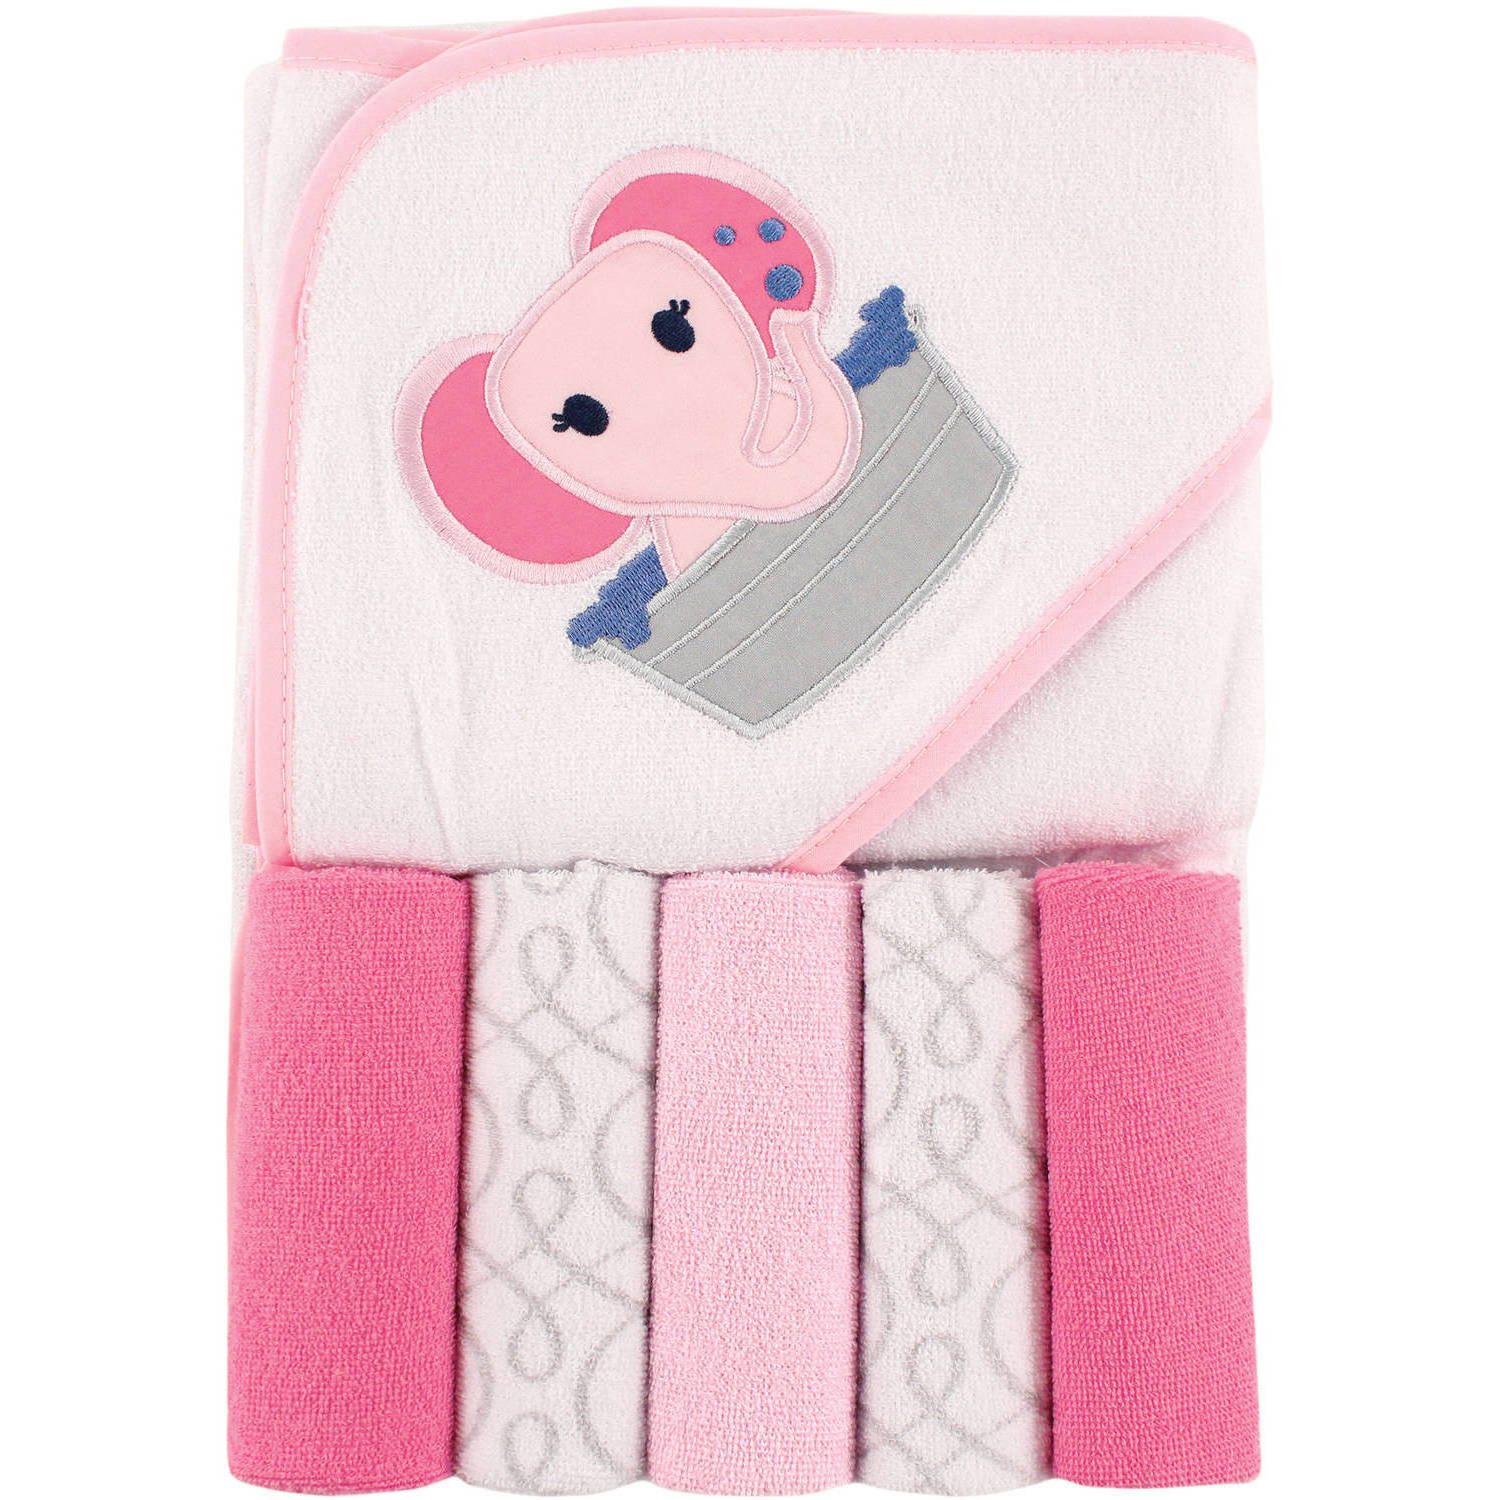 Luvable Friends Hooded Towel and 5 Washcloths, Pink Elephant